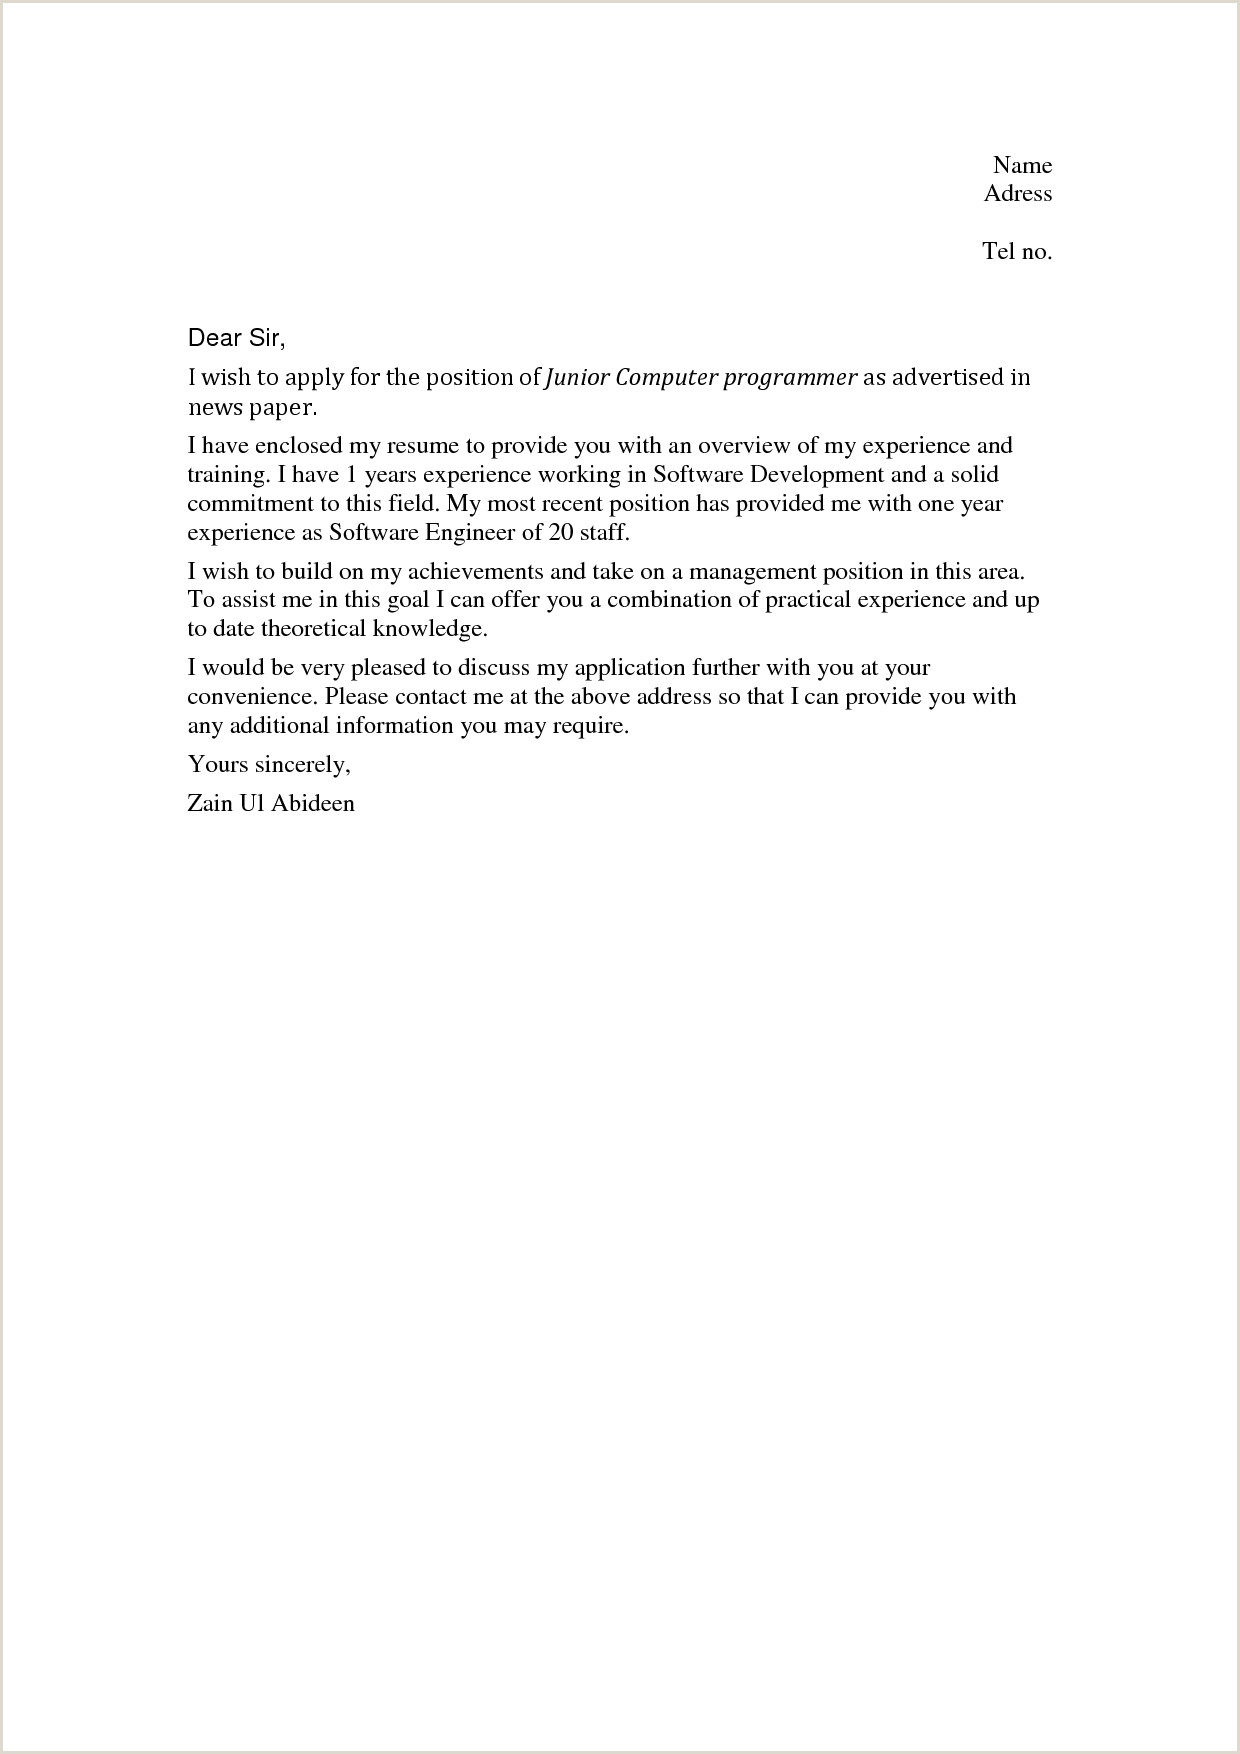 Child Care assistant Resume Cover Letter Health Care assistant No Experience Unique